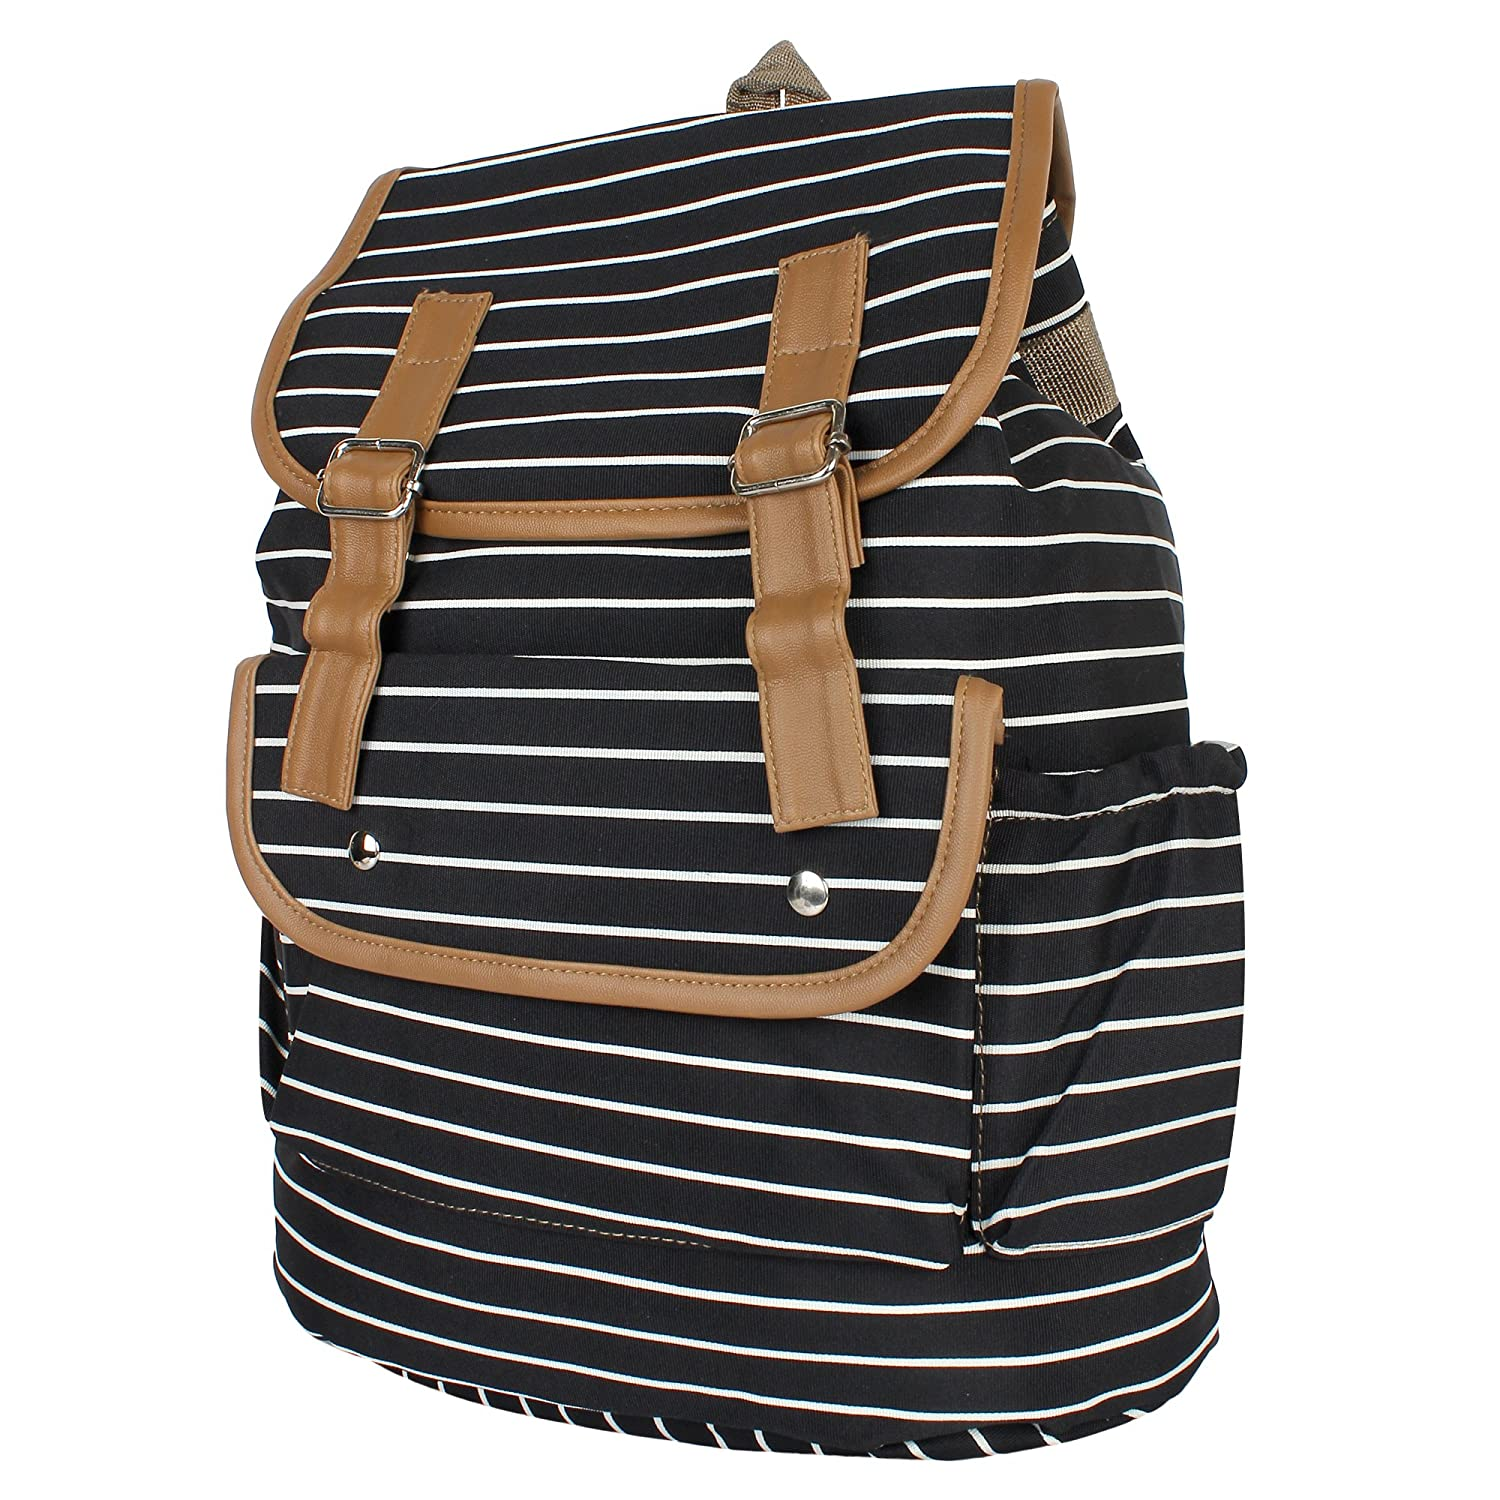 2798fd92ebb0 Buy Atled Black colour Backpack Bag Online at Low Prices in India -  Amazon.in